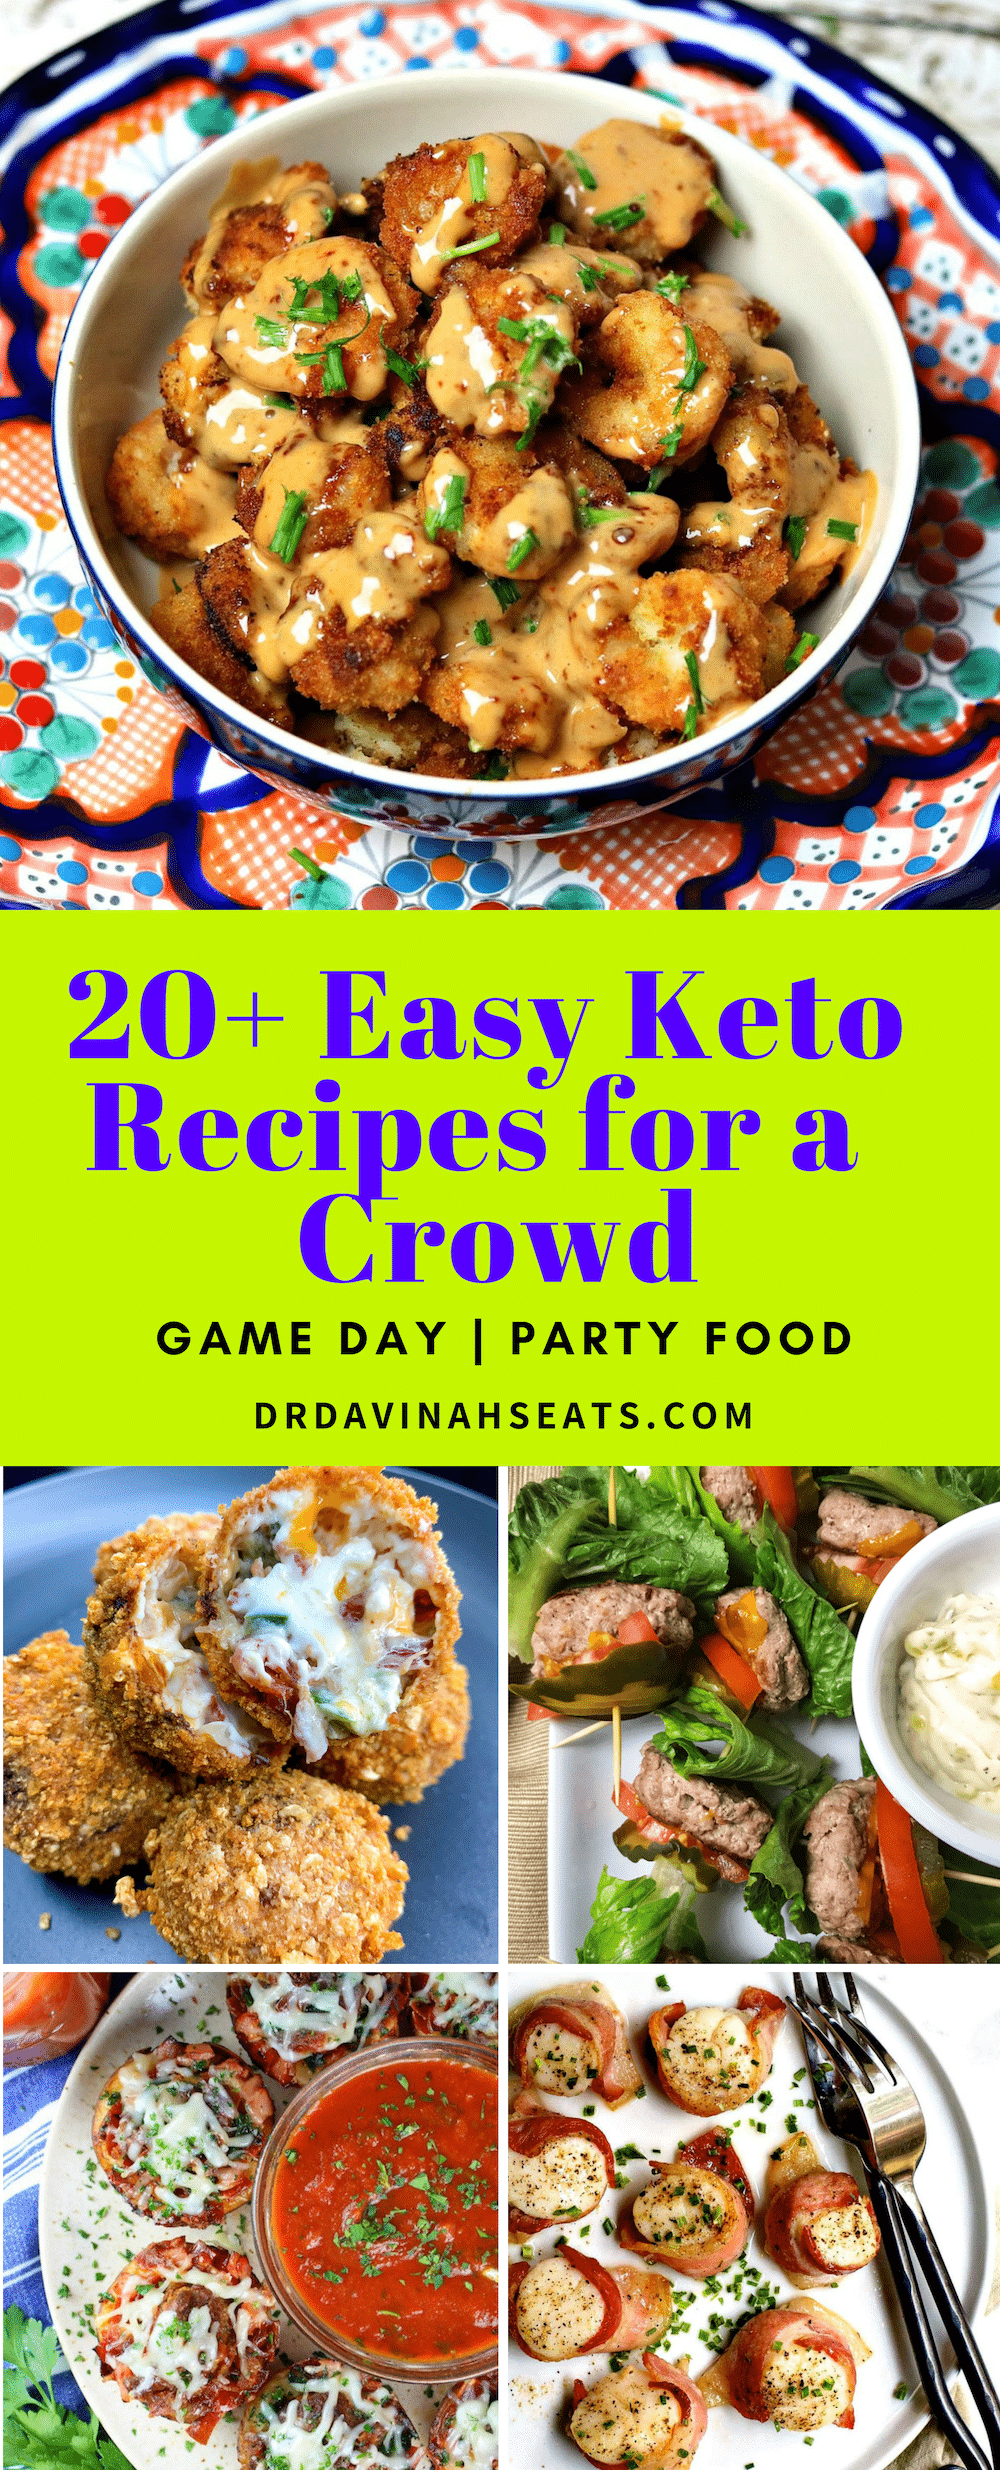 40 Easy Keto Appetizers & Tailgate Recipes Tailgate food